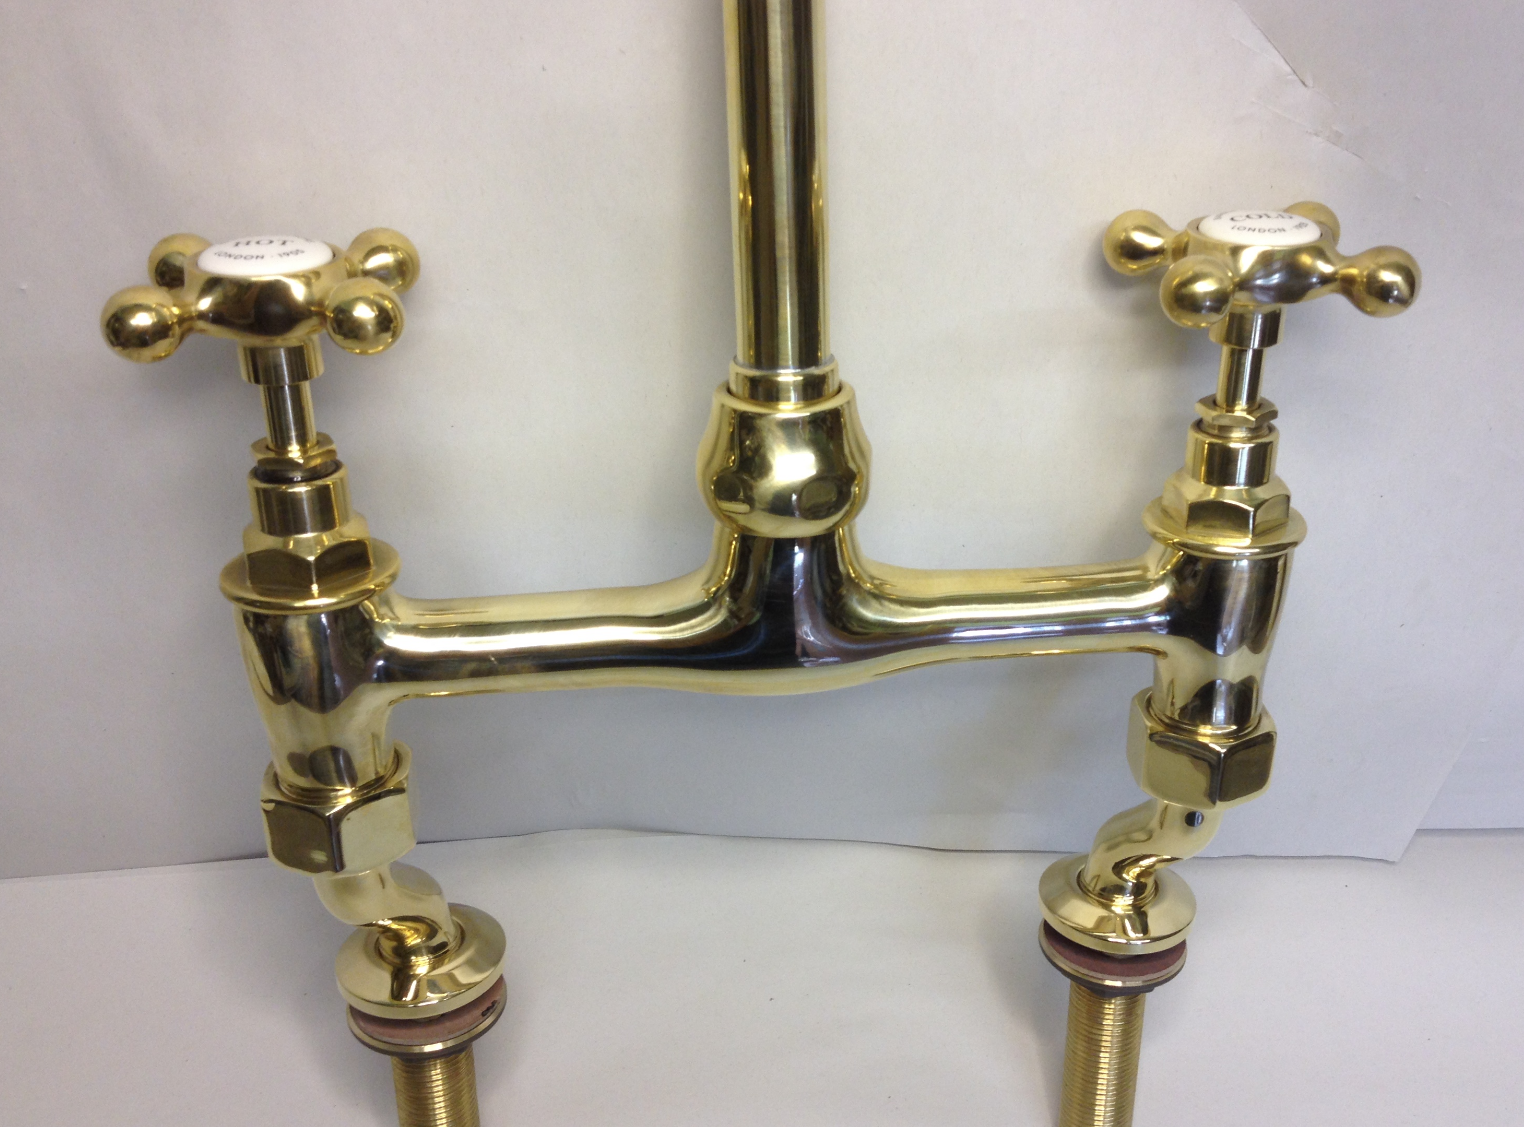 Kitchen bridge mixer taps in polished brass.